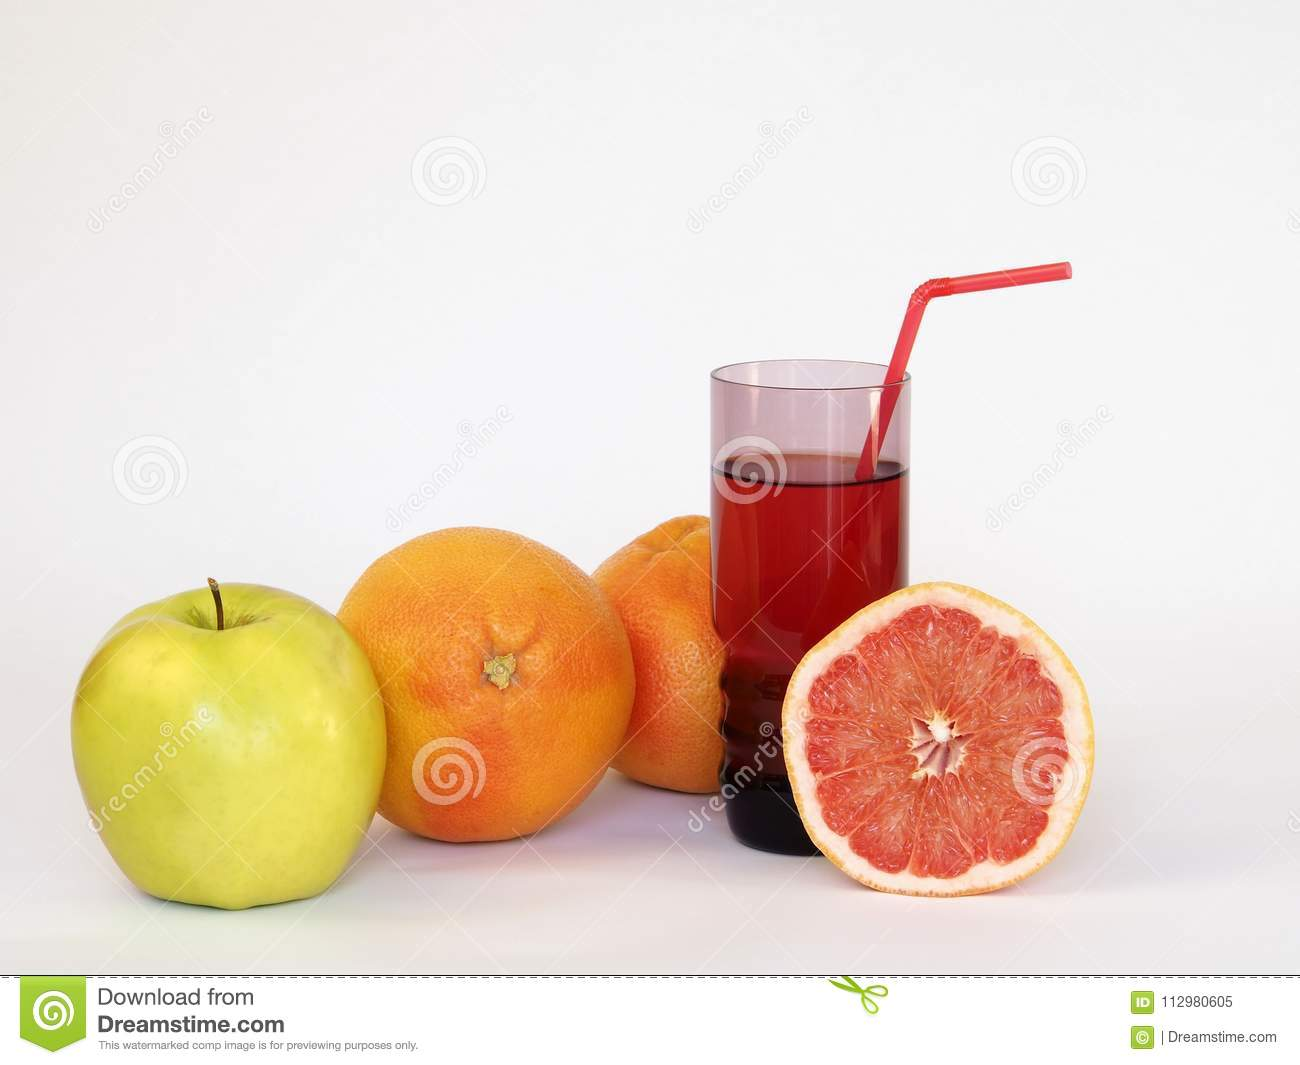 Still life. On the White background are: an apple, two whole grapefruits and a glass of juice, from which sticks out a tube for co